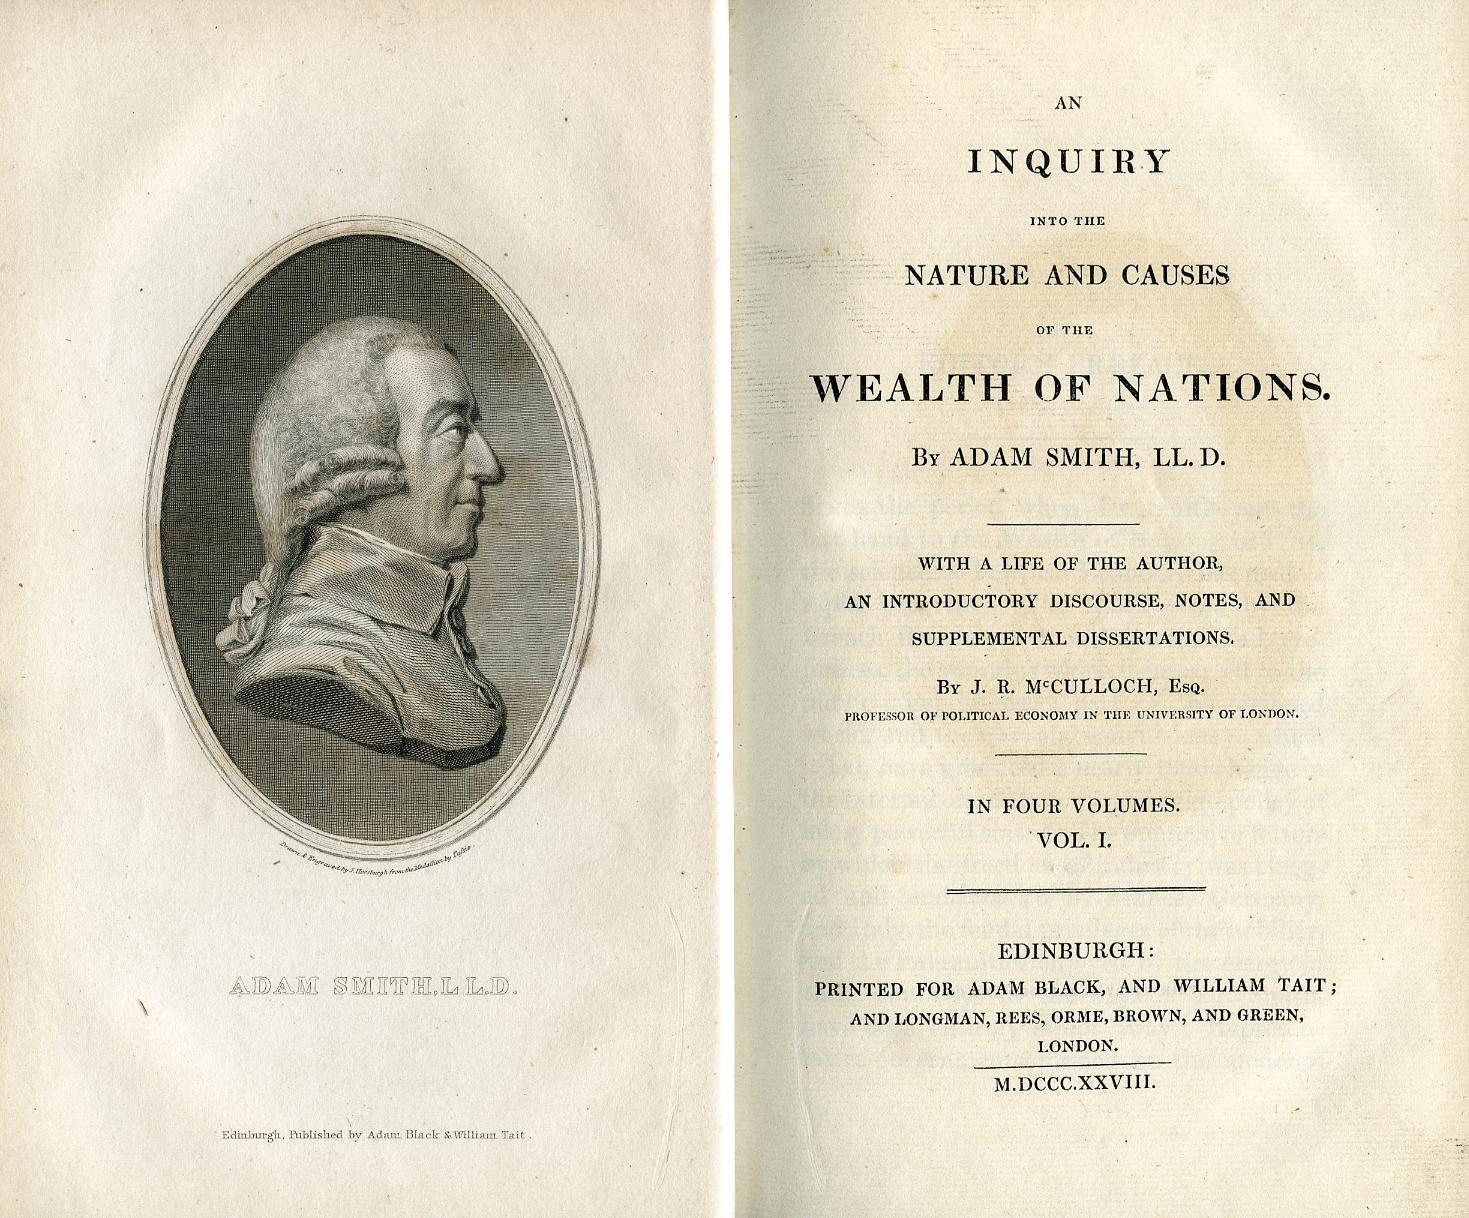 the wealth of nations essay An inquiry into the nature and causes of the wealth of nations lesson plan includes 60 short essay assignments that require students to understand and interpret the work.